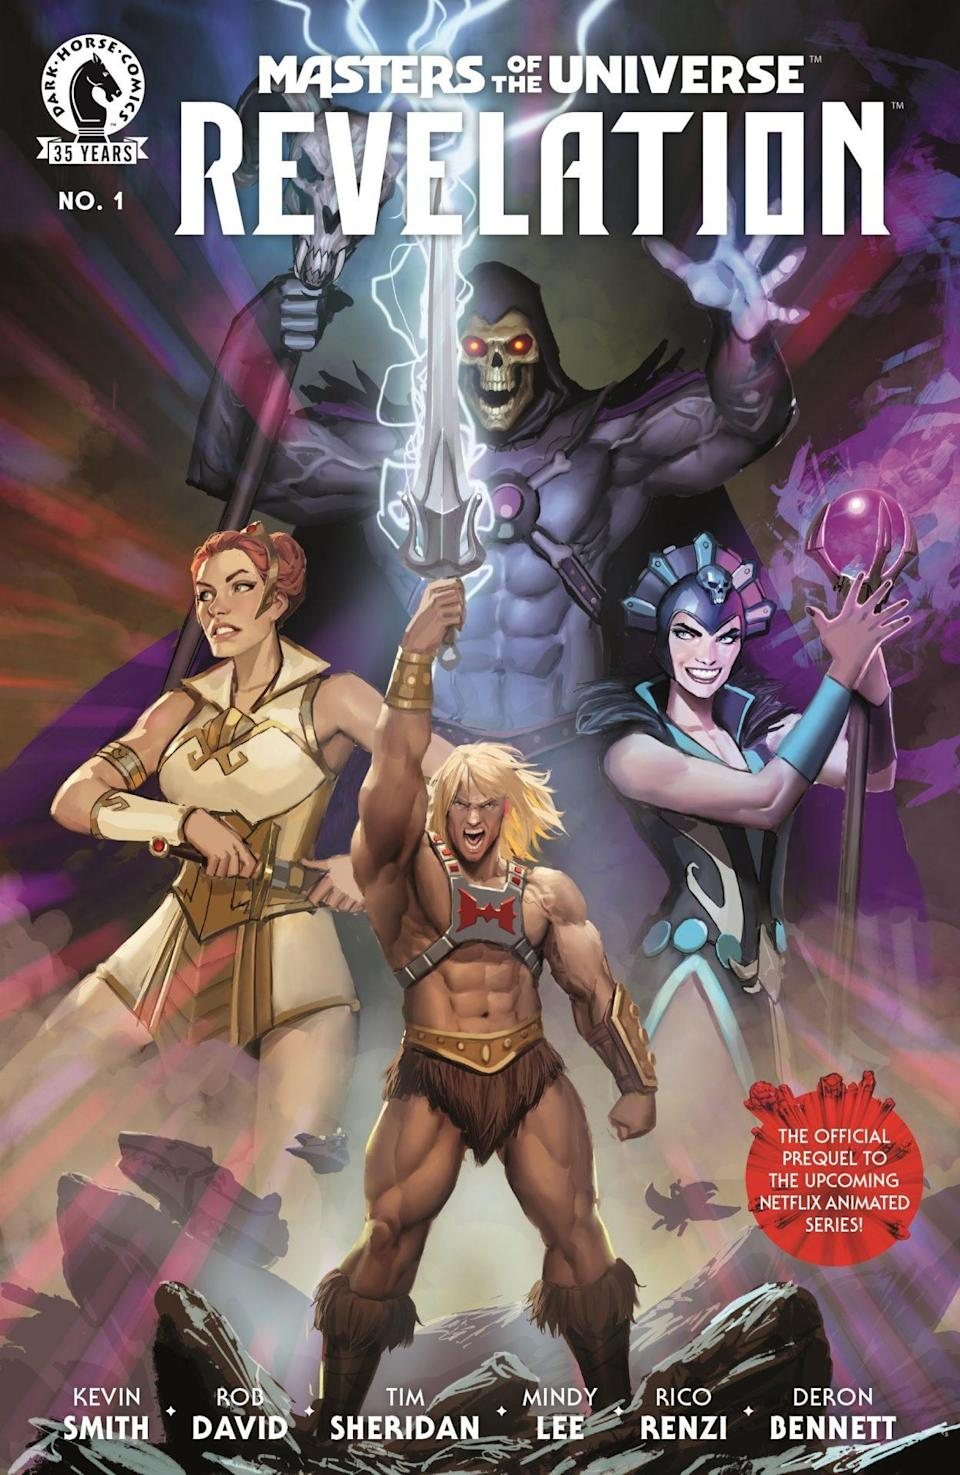 The cover for Dark Horse Comics' Masters of the Universe: Revelation #1.